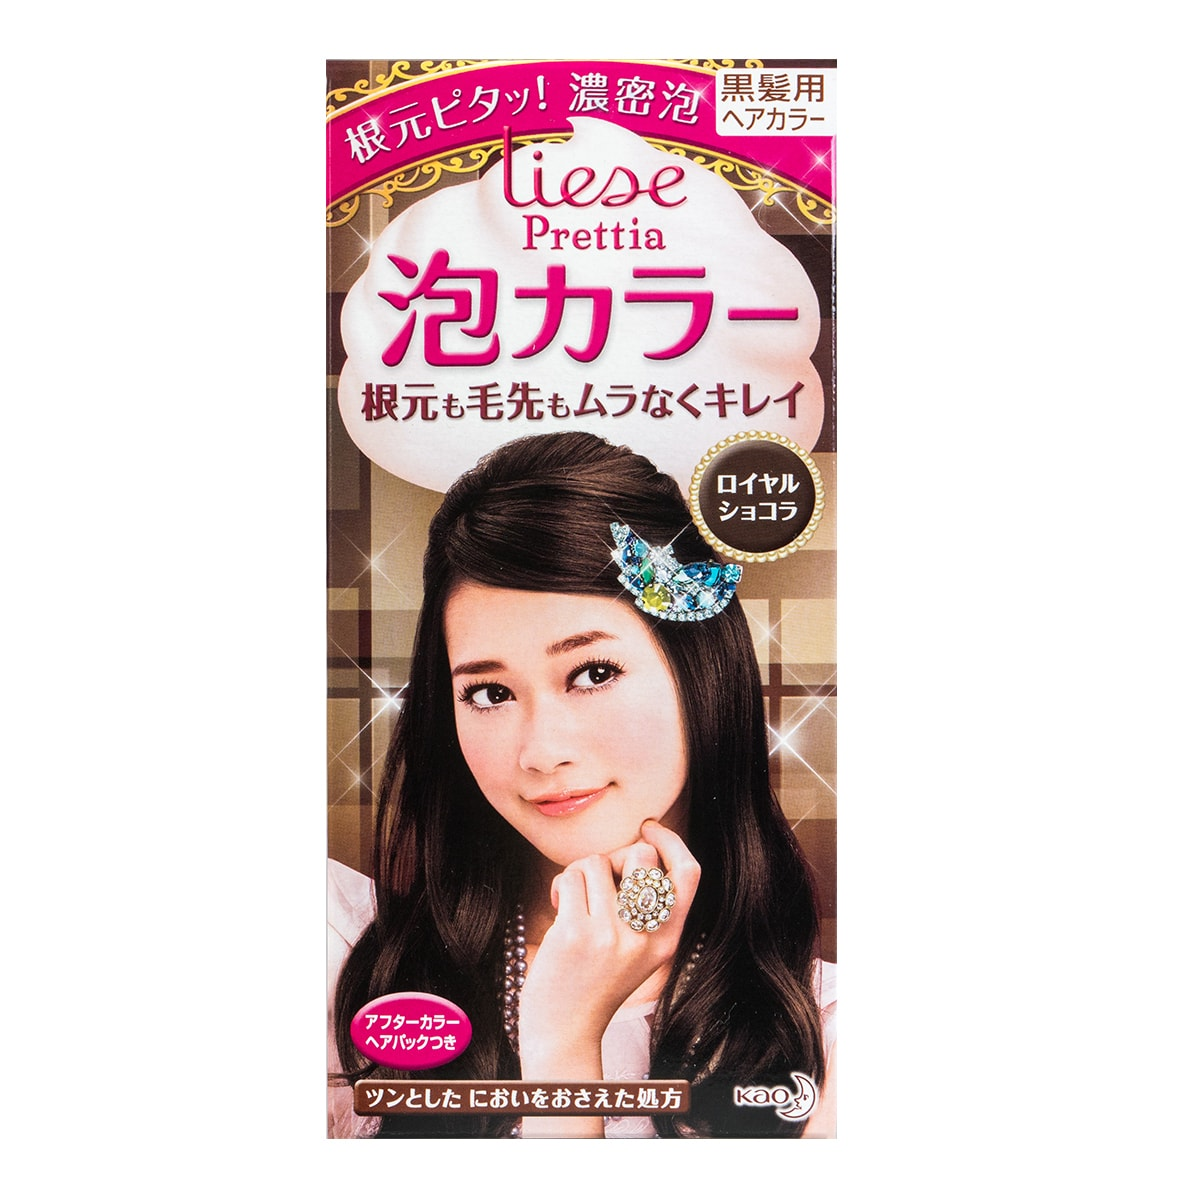 KAO LIESE PRETTIA Bubble Hair Dye Classic Chocolate 1set